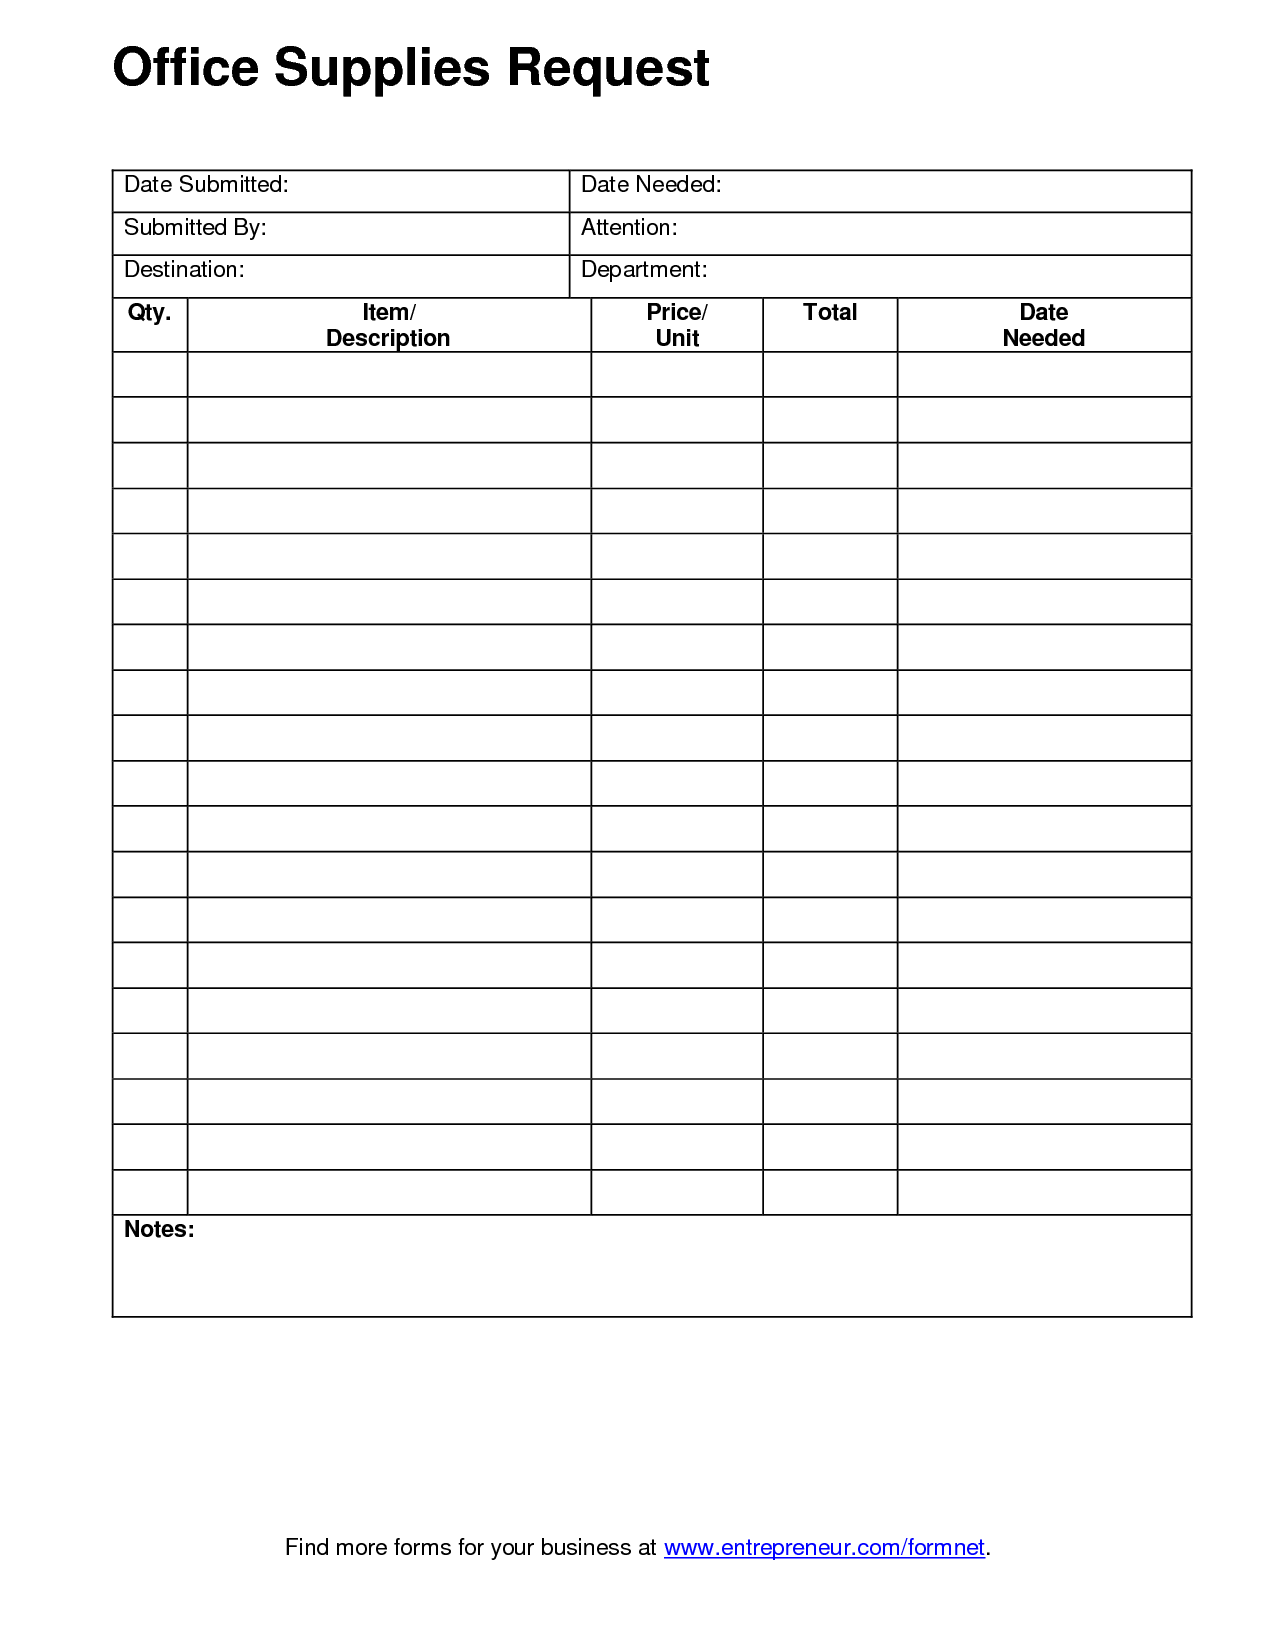 Office Supply Form Template Office Supplies Organization Google